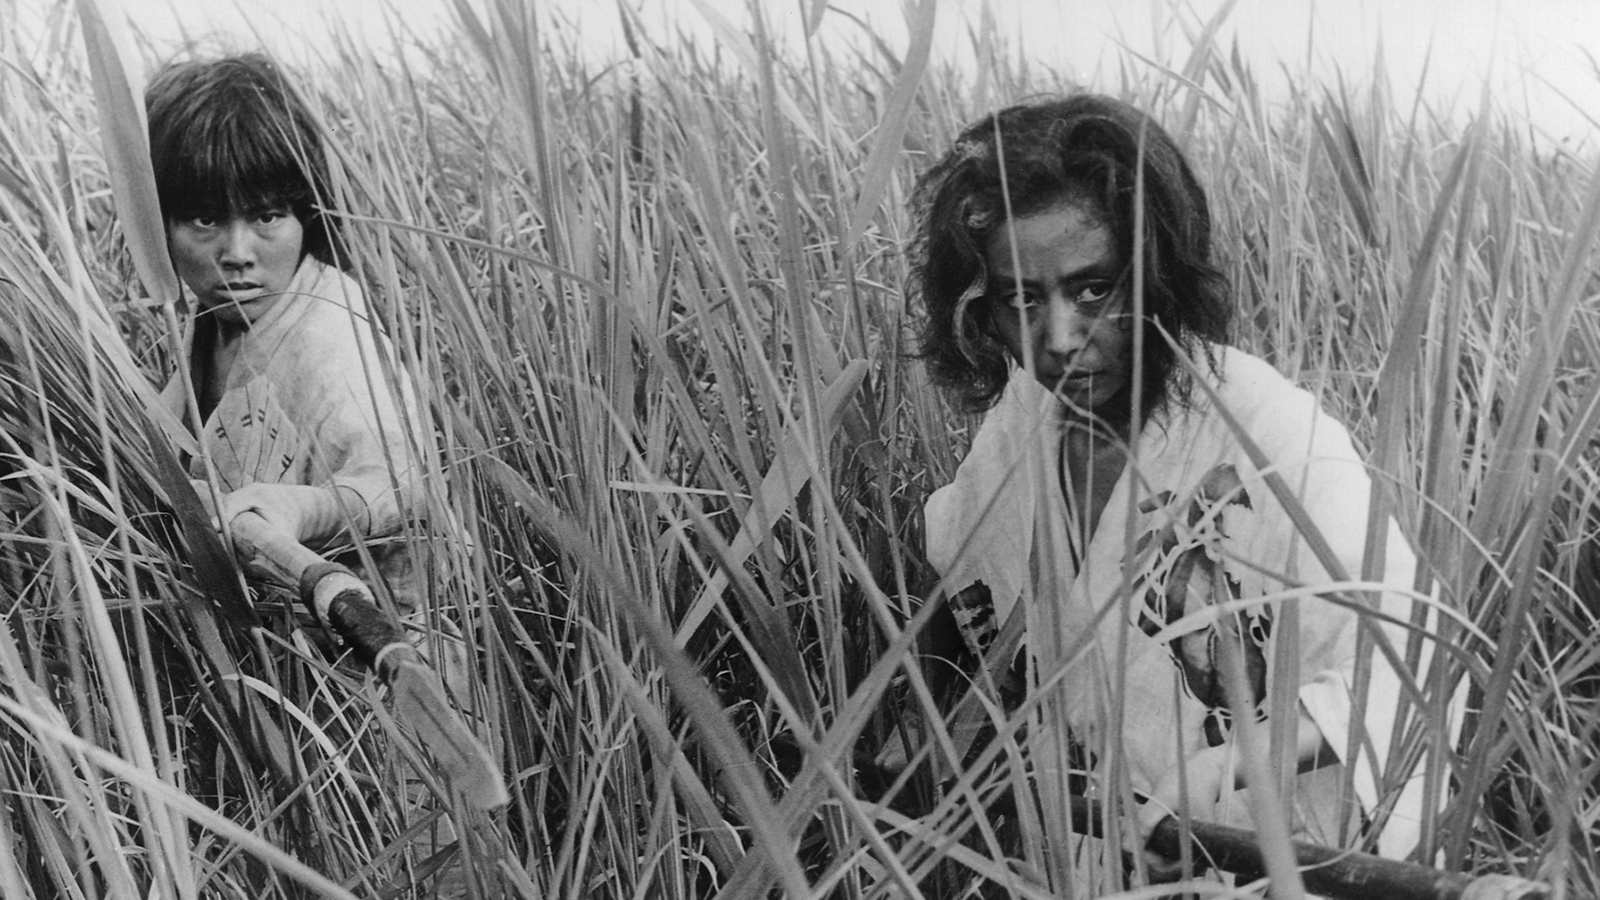 Daughter-in-law Jitsuko Yoshimura and mother Nobuko Otawa lie in wait in the sea of reeds in Oni Baba (1964)